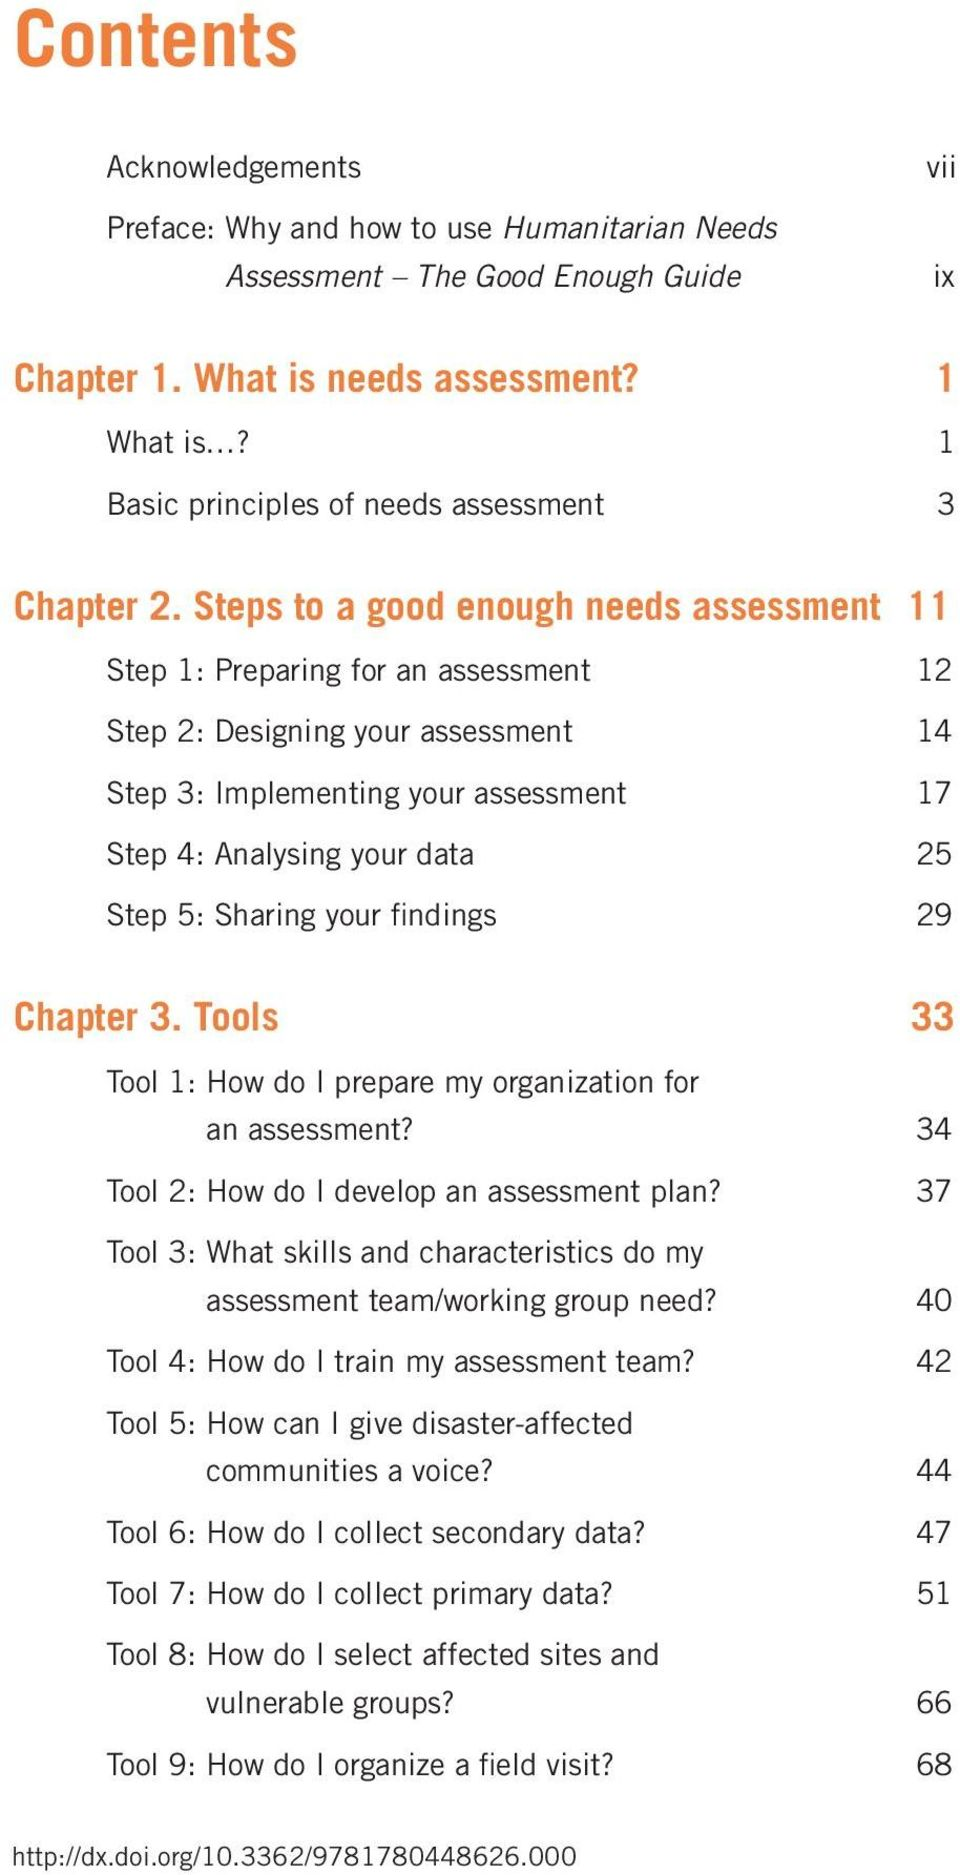 Steps to a good enough needs assessment 11 Step 1: Preparing for an assessment 12 Step 2: Designing your assessment 14 Step 3: Implementing your assessment 17 Step 4: Analysing your data 25 Step 5: